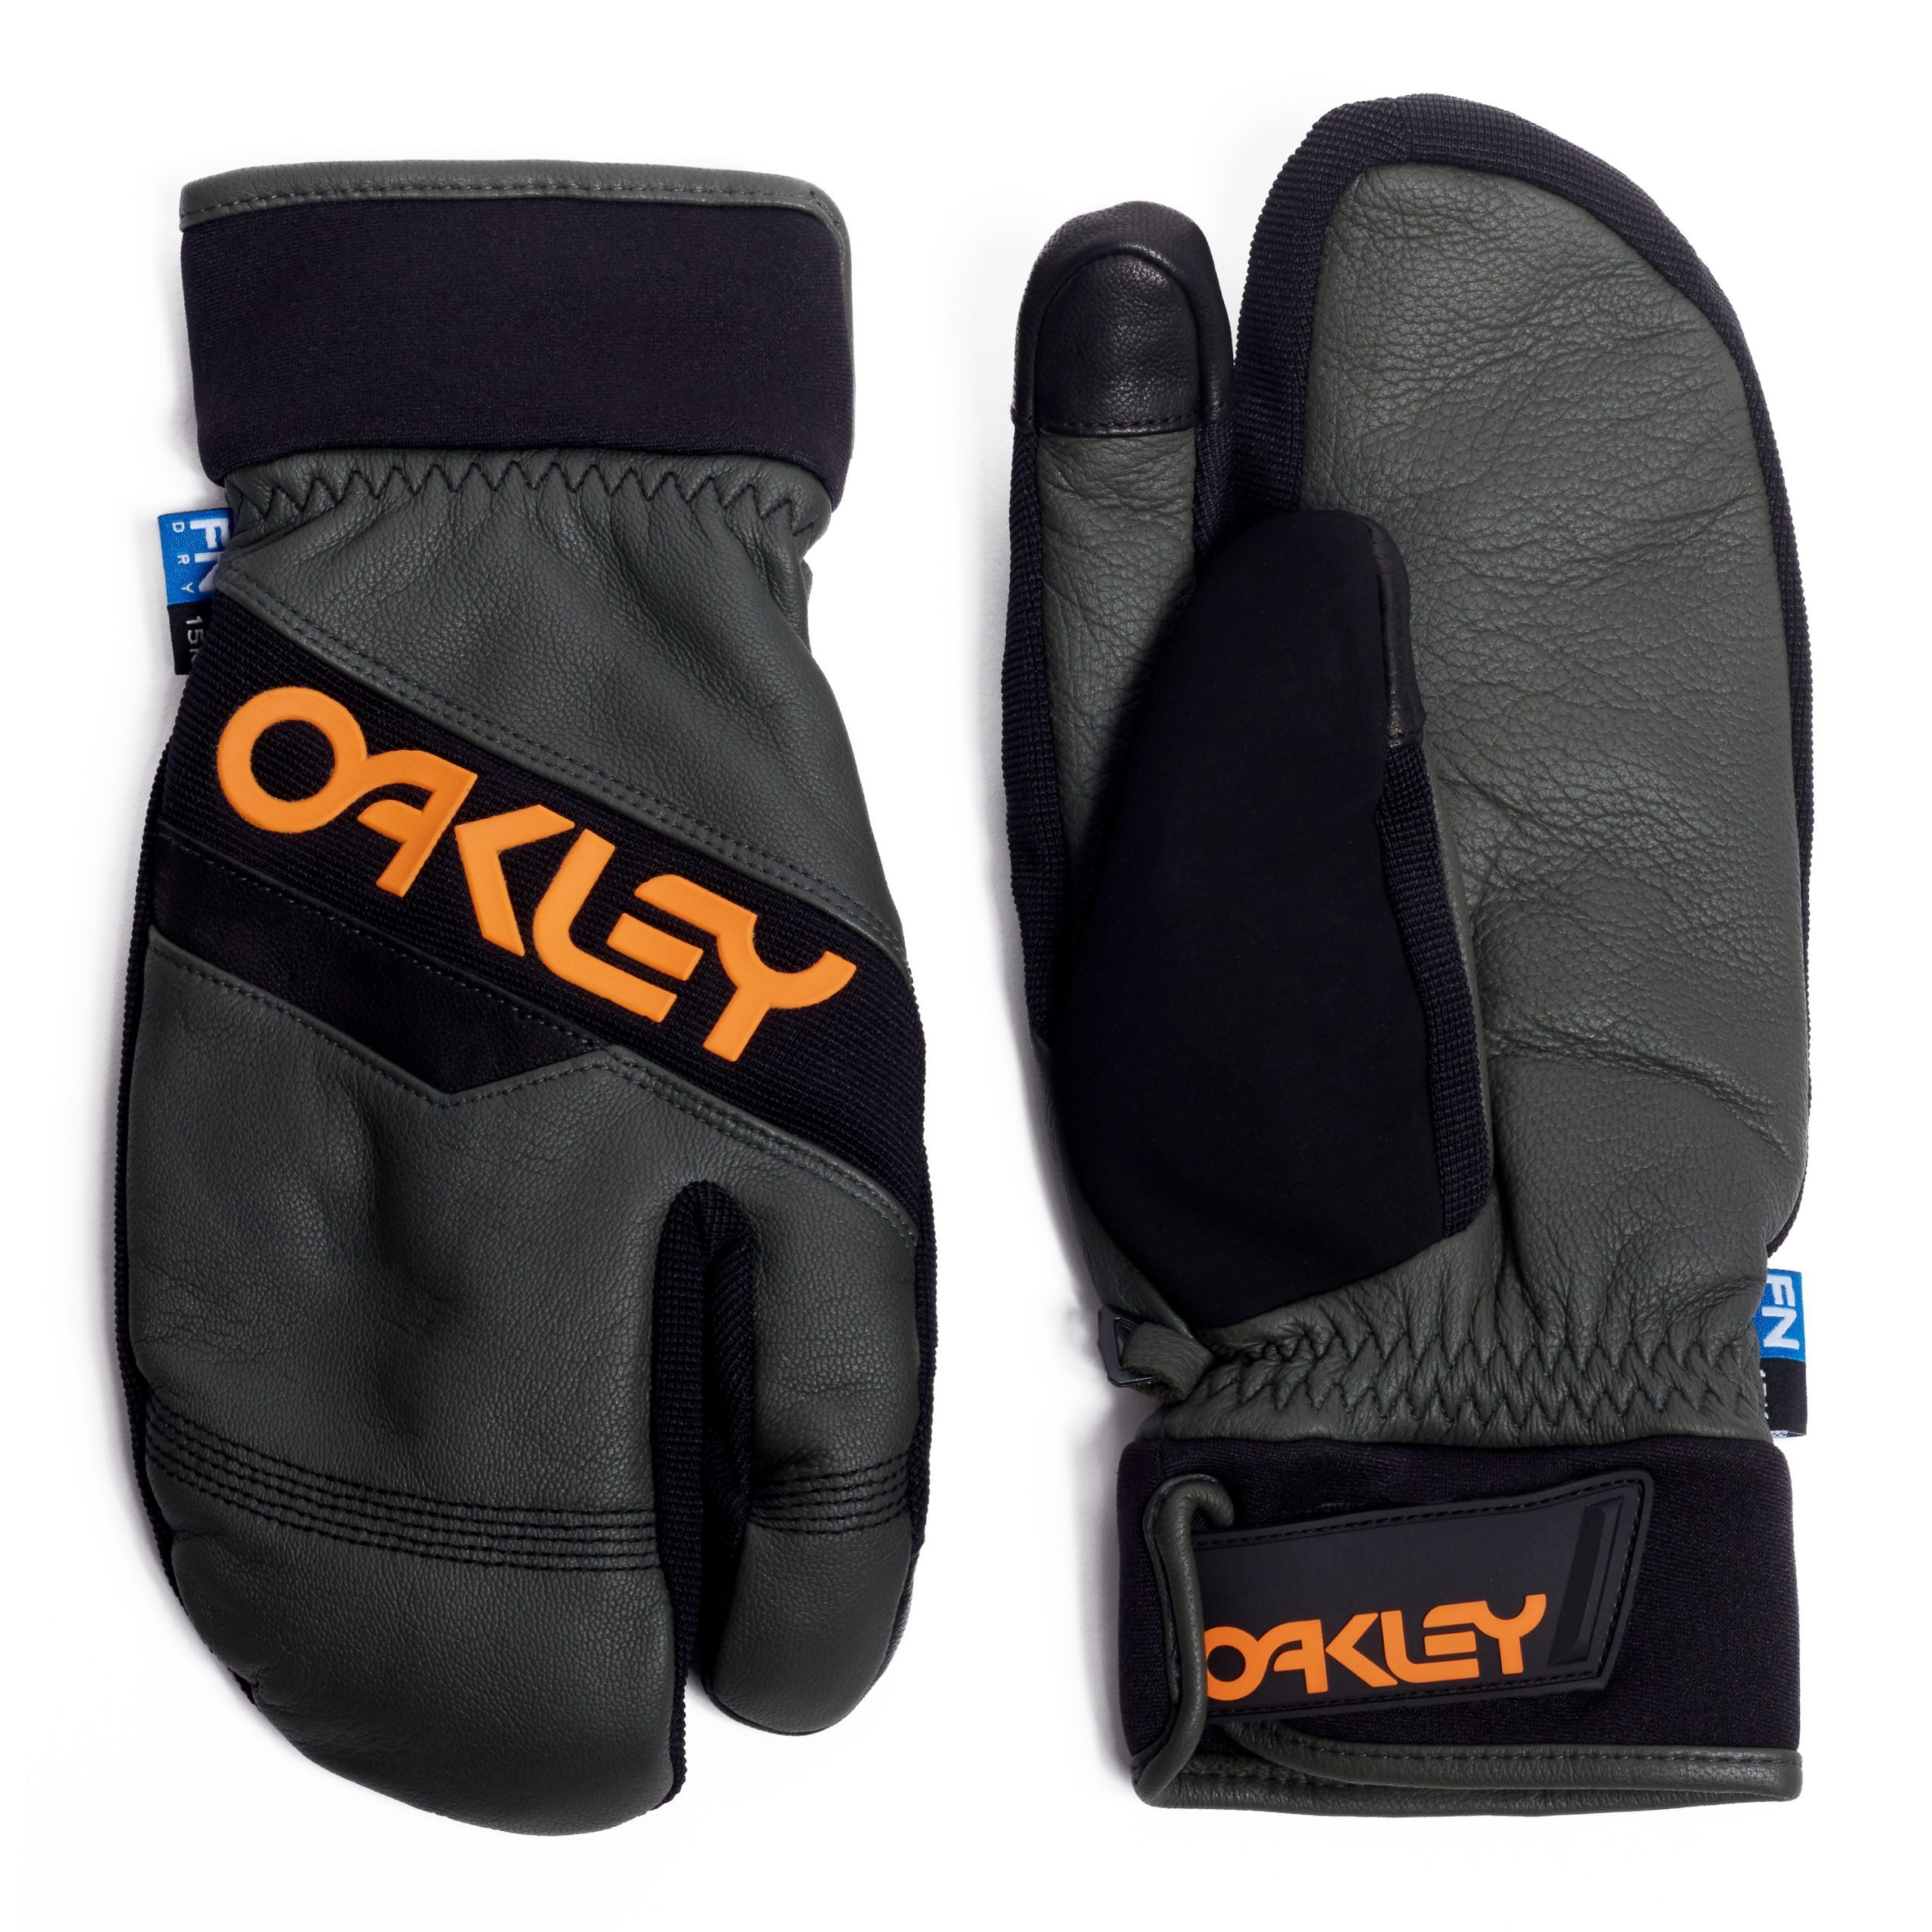 Oakley Thermonuclear protection collection